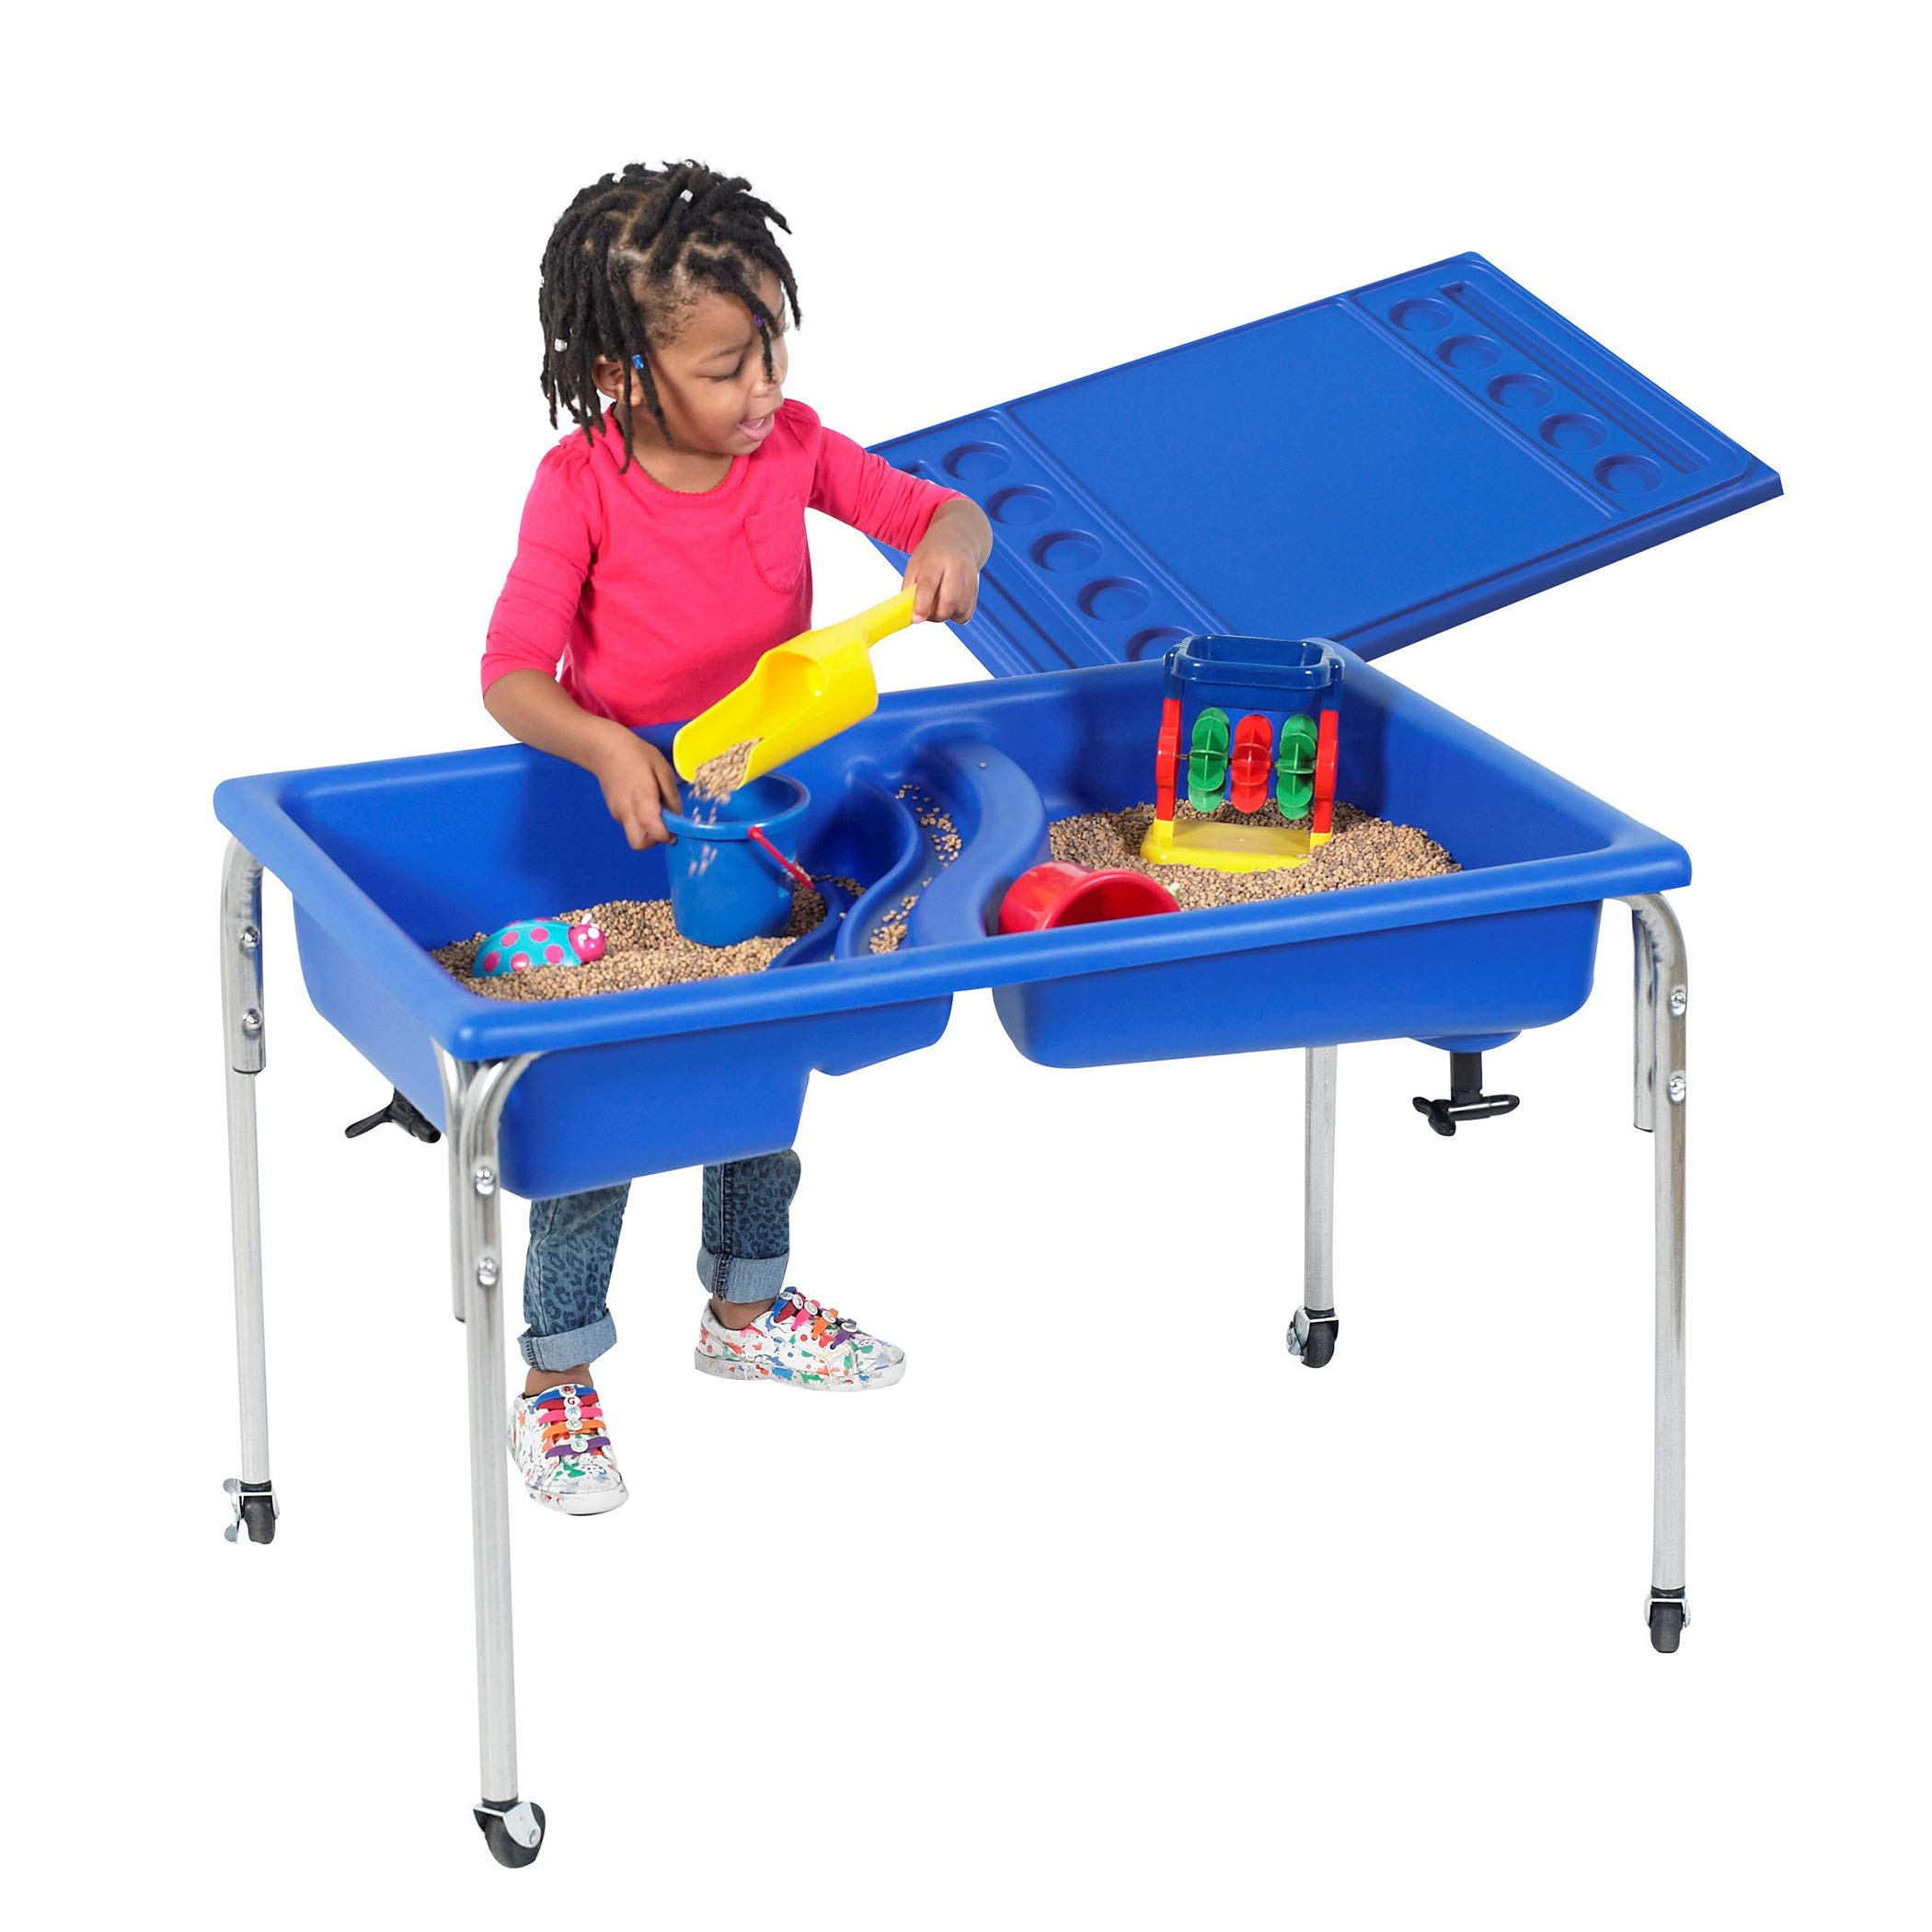 Children's Factory Neptune Table and Lid Set, 36'' by 24'' by 24'', Blue - Double-Basin Sand and Water Table - Lid for Safe and Clean Storage - Made of Durable Plastic - Indoor or Outdoor Use by Children's Factory